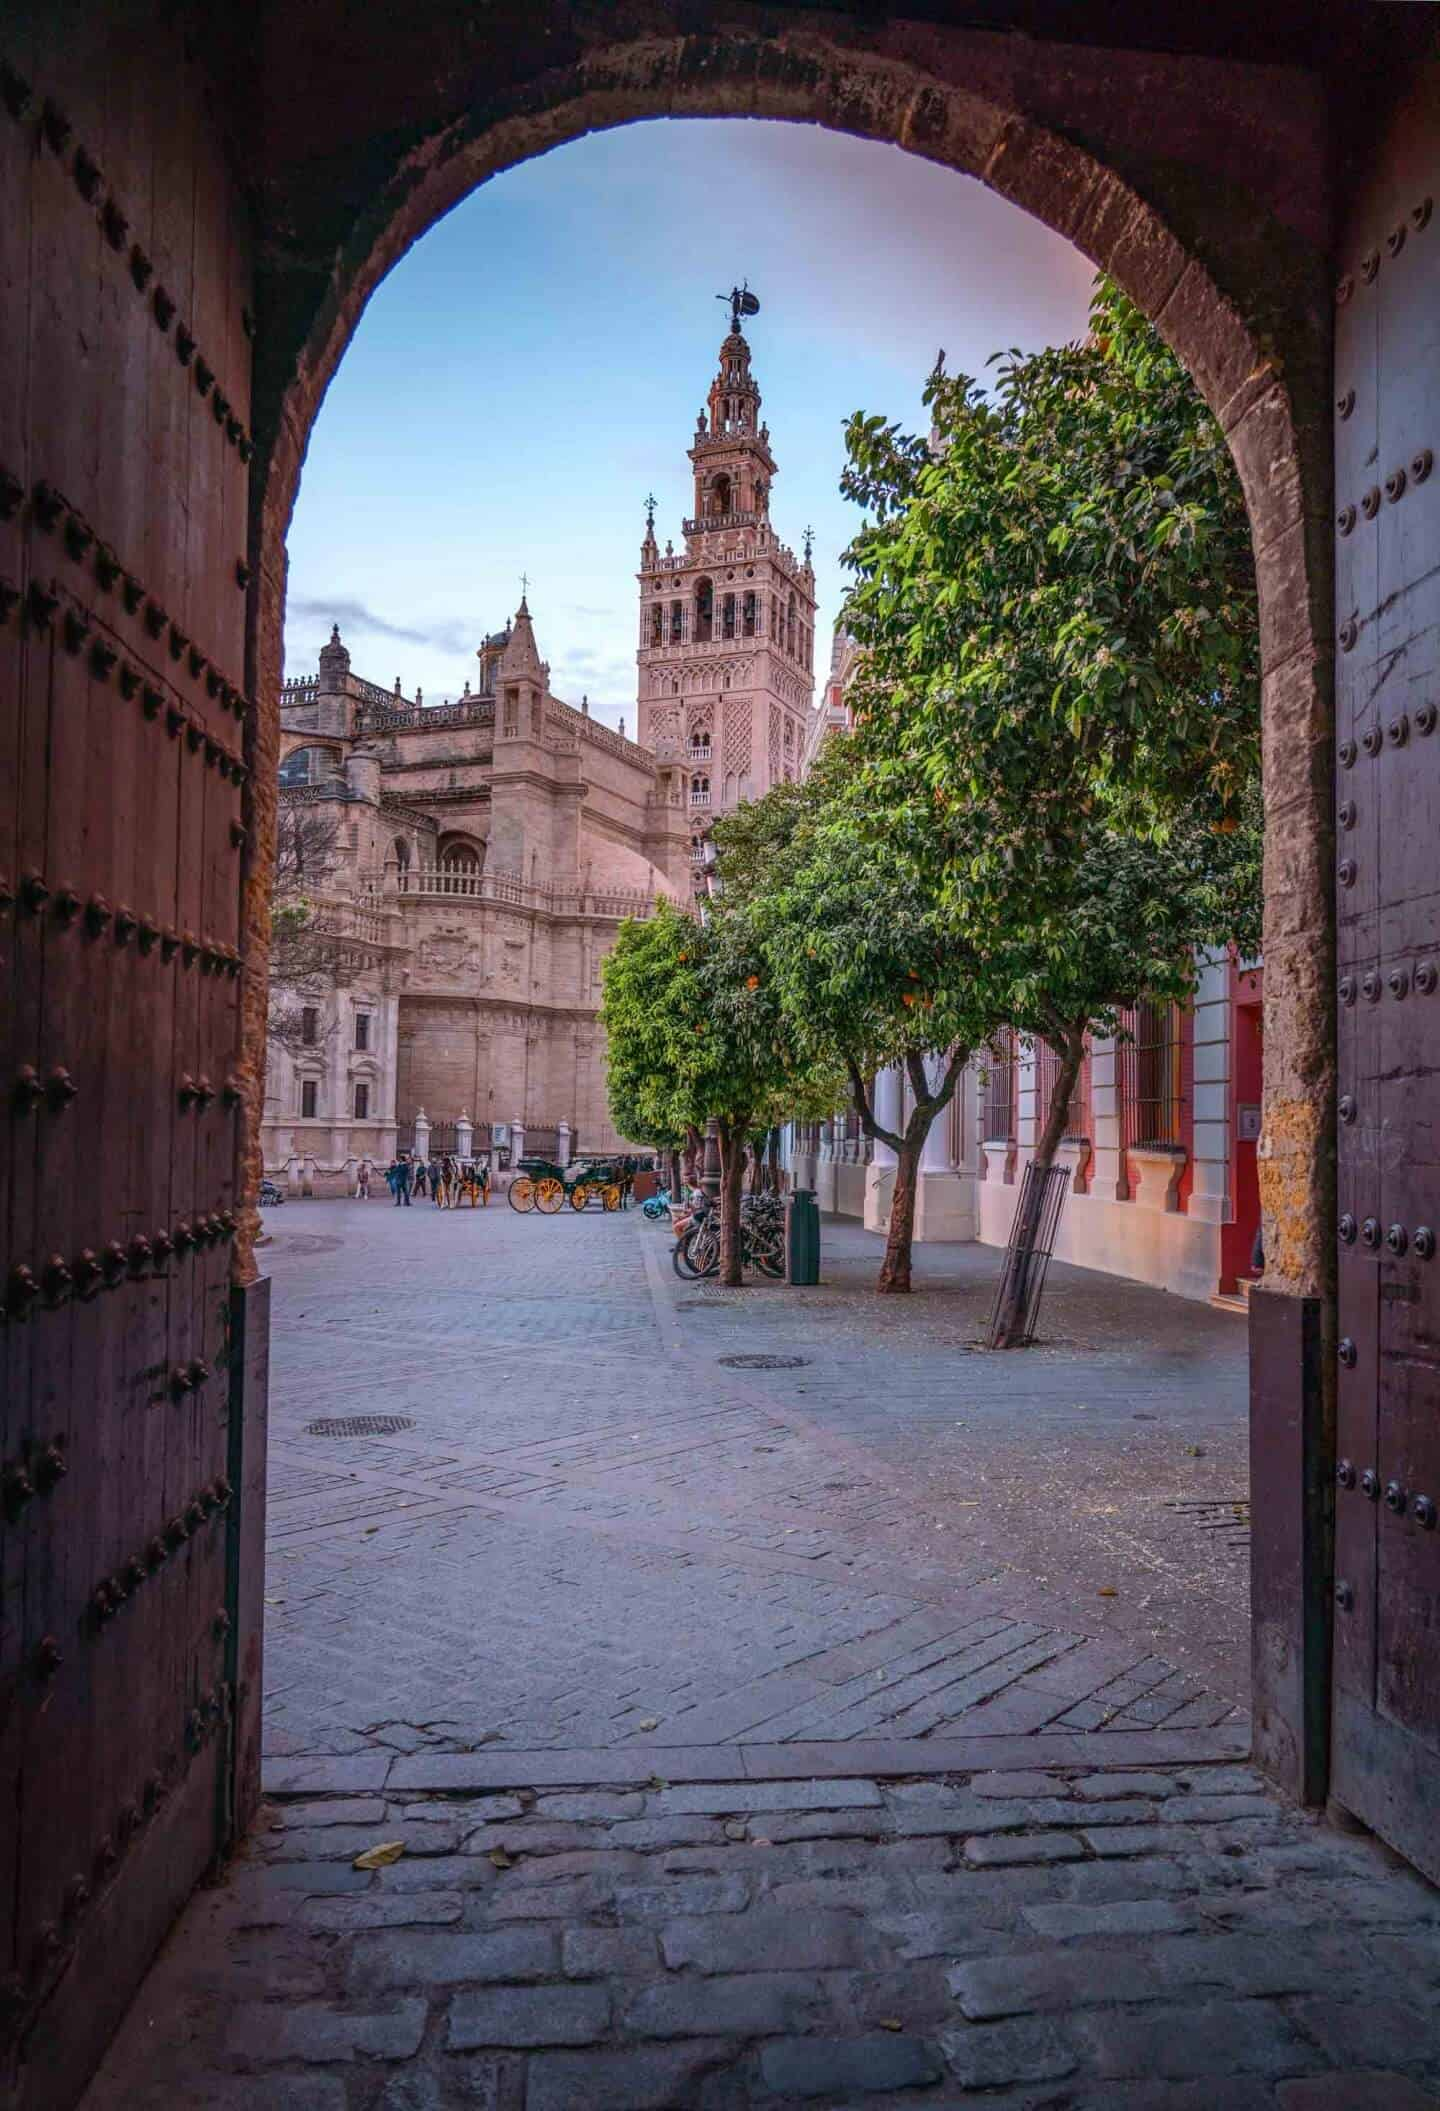 View of Seville Cathedral from Patio de Banderas